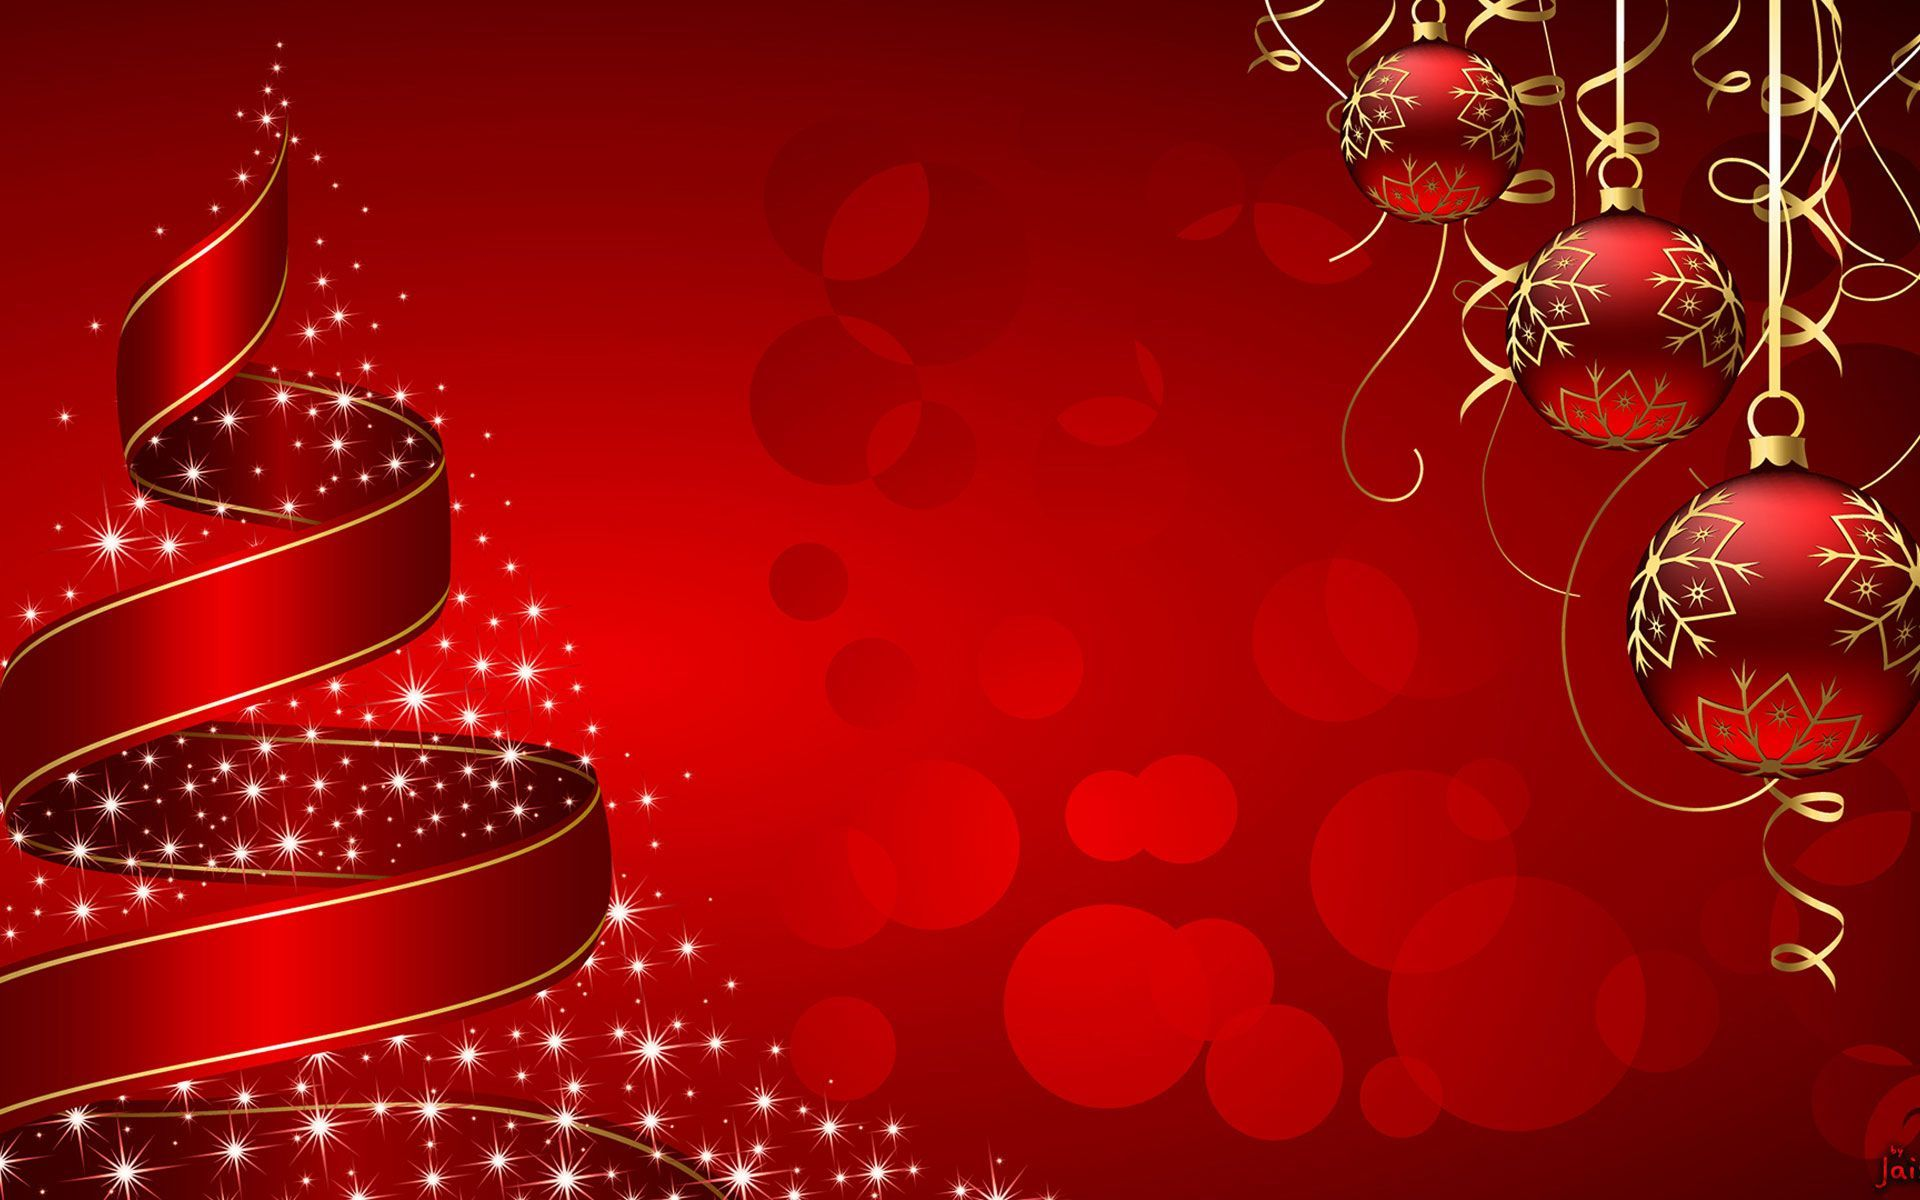 Christmas Tree Wallpapers Free - Wallpaper Cave